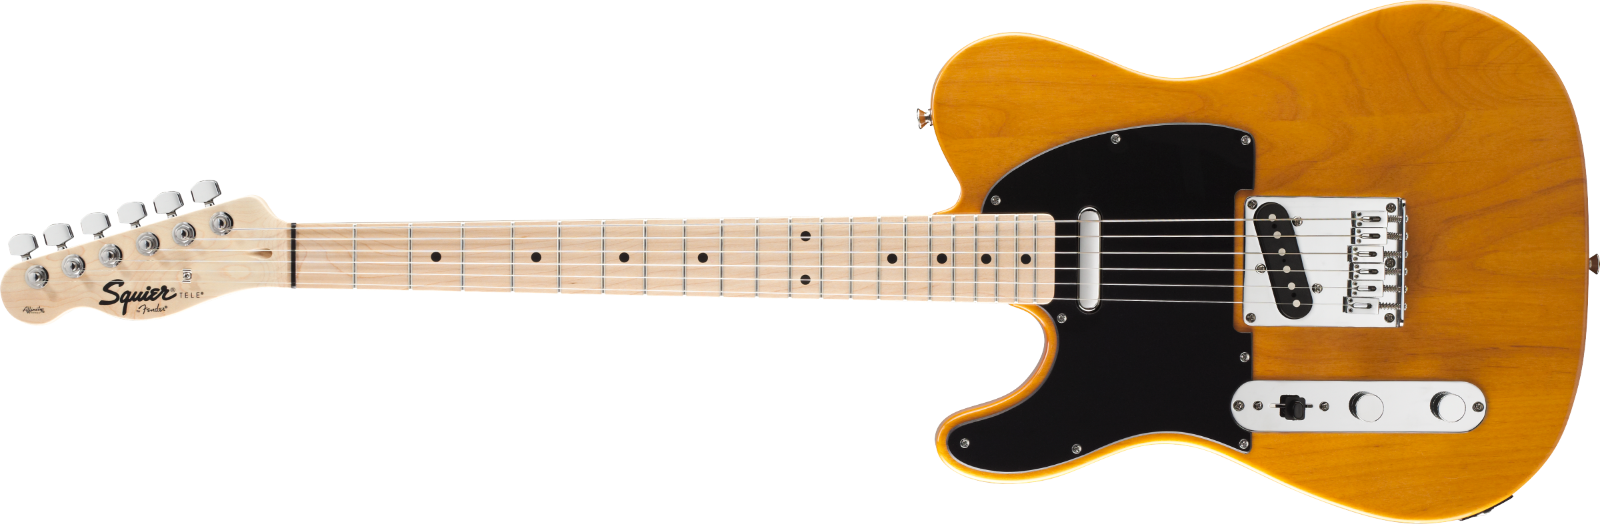 This pre-owned left handed Fender Telecaster guitar is for sale - NOS Fender Squier LEFT HAND Tele Butterscotch Blonde Electric Telecaster Guitar